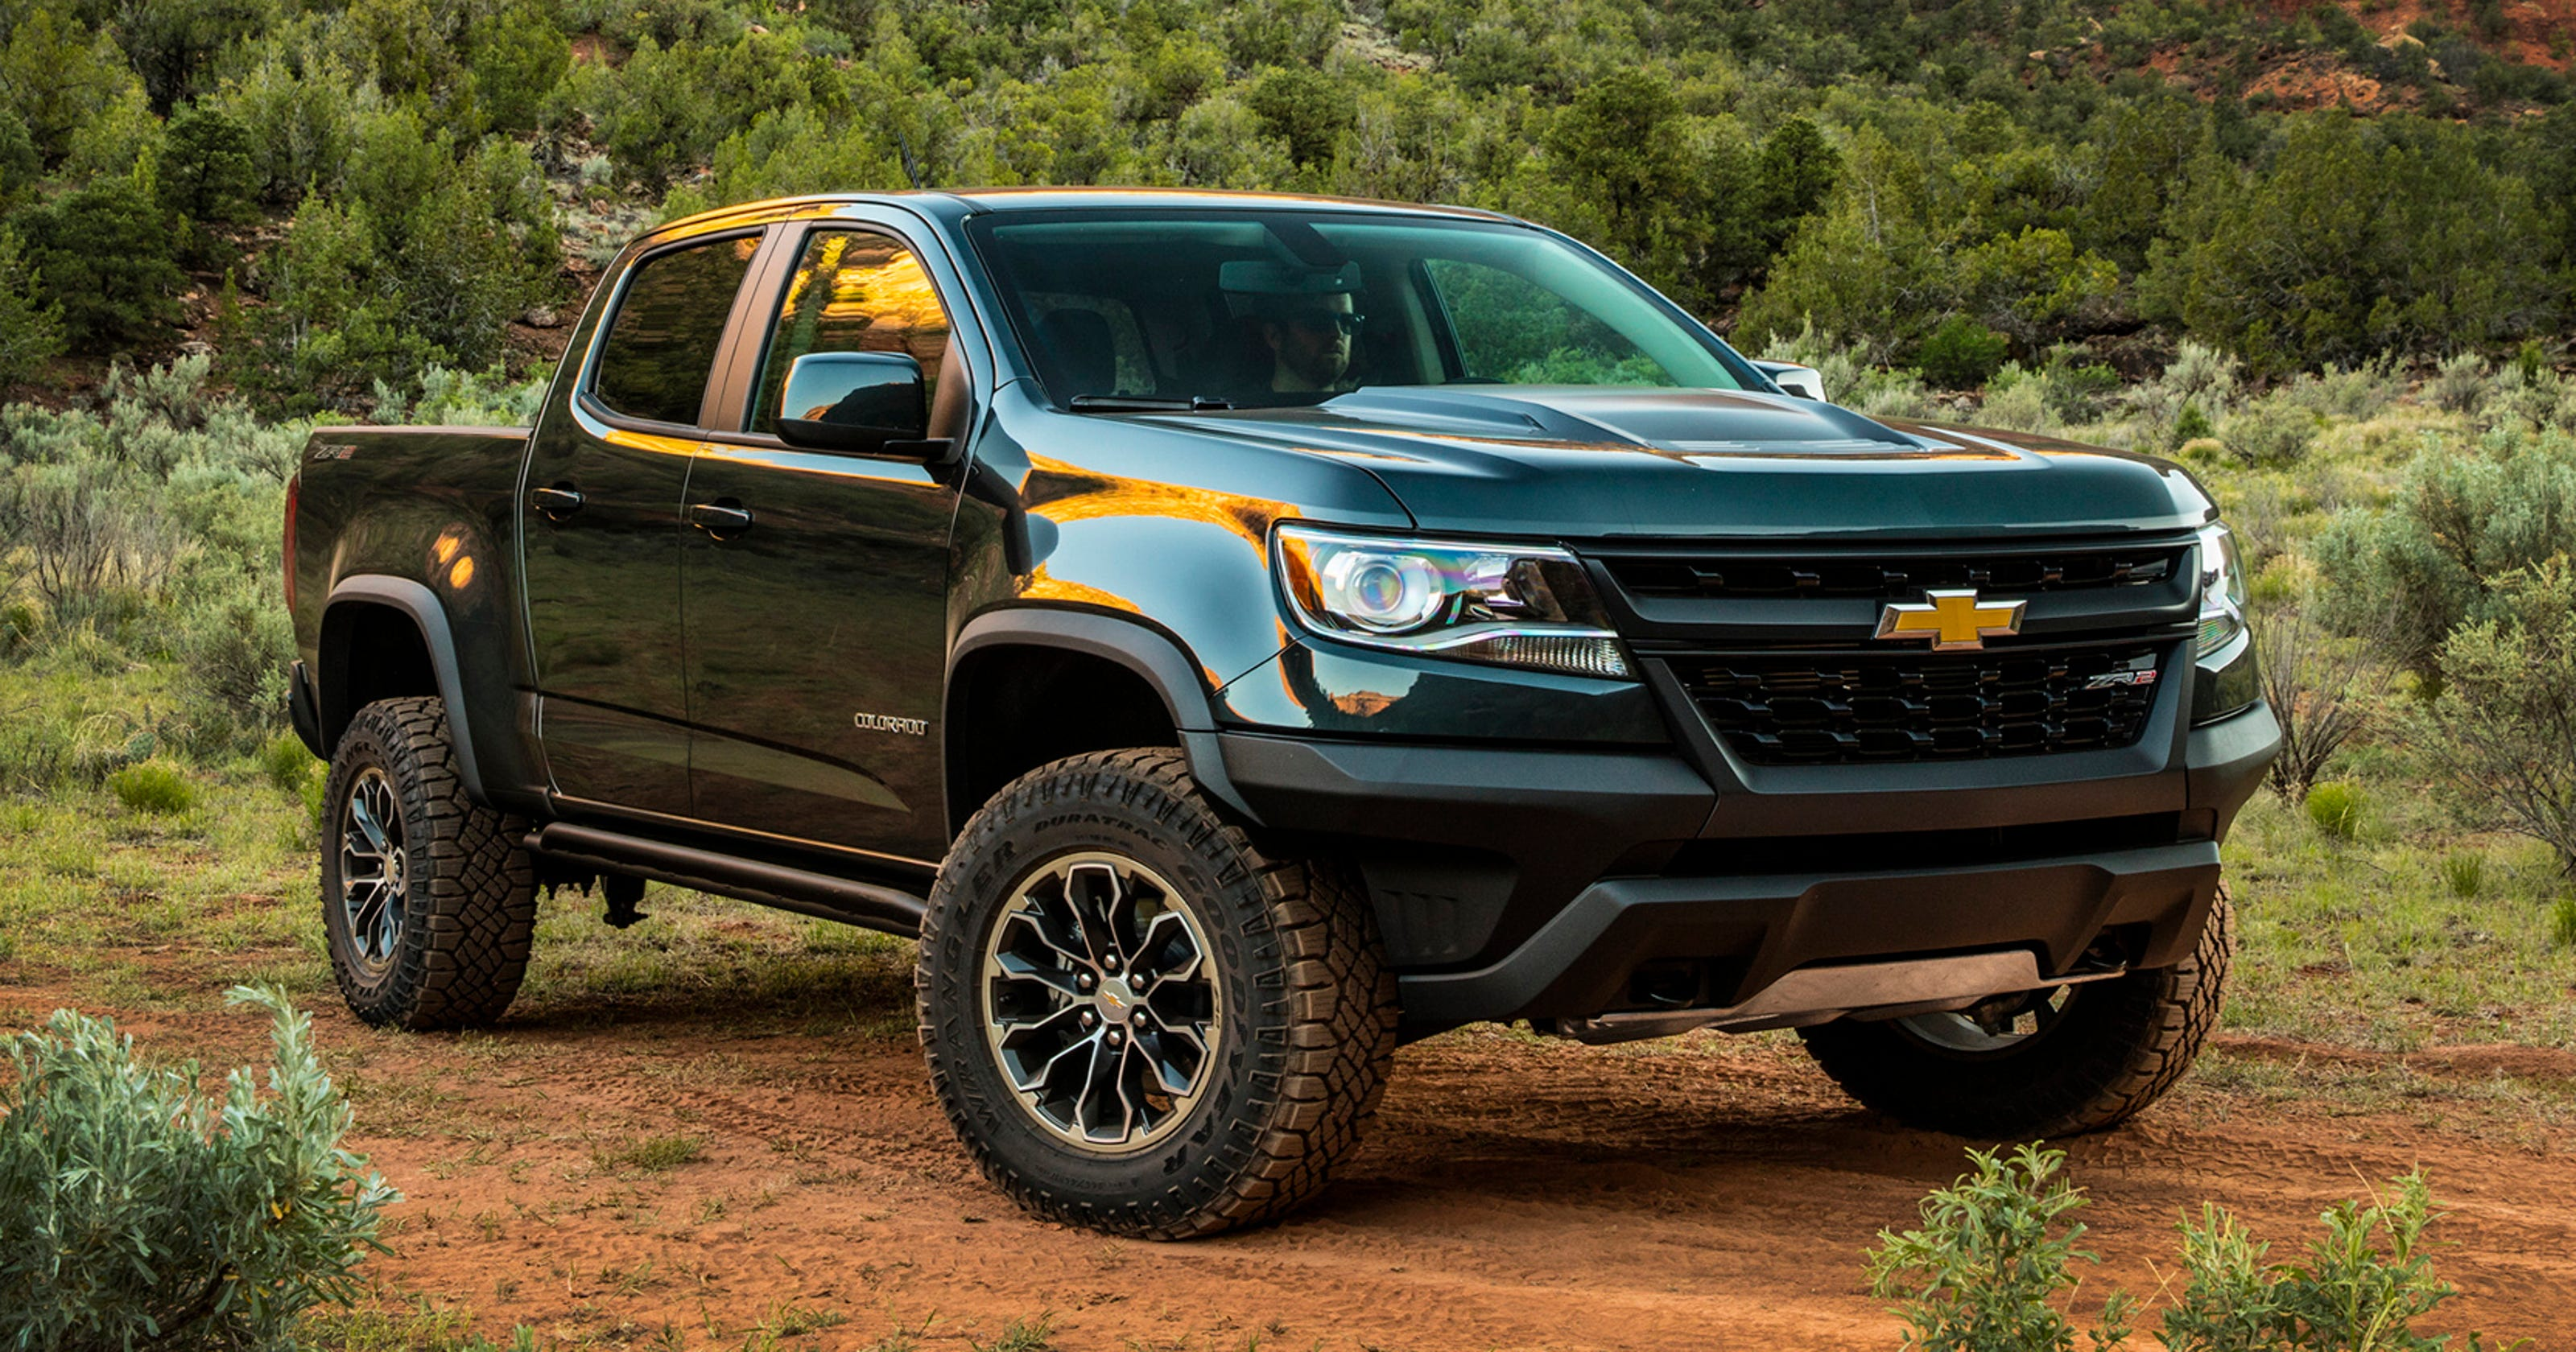 Can T Afford Full Size Edmunds Compares 5 Midsize Pickup